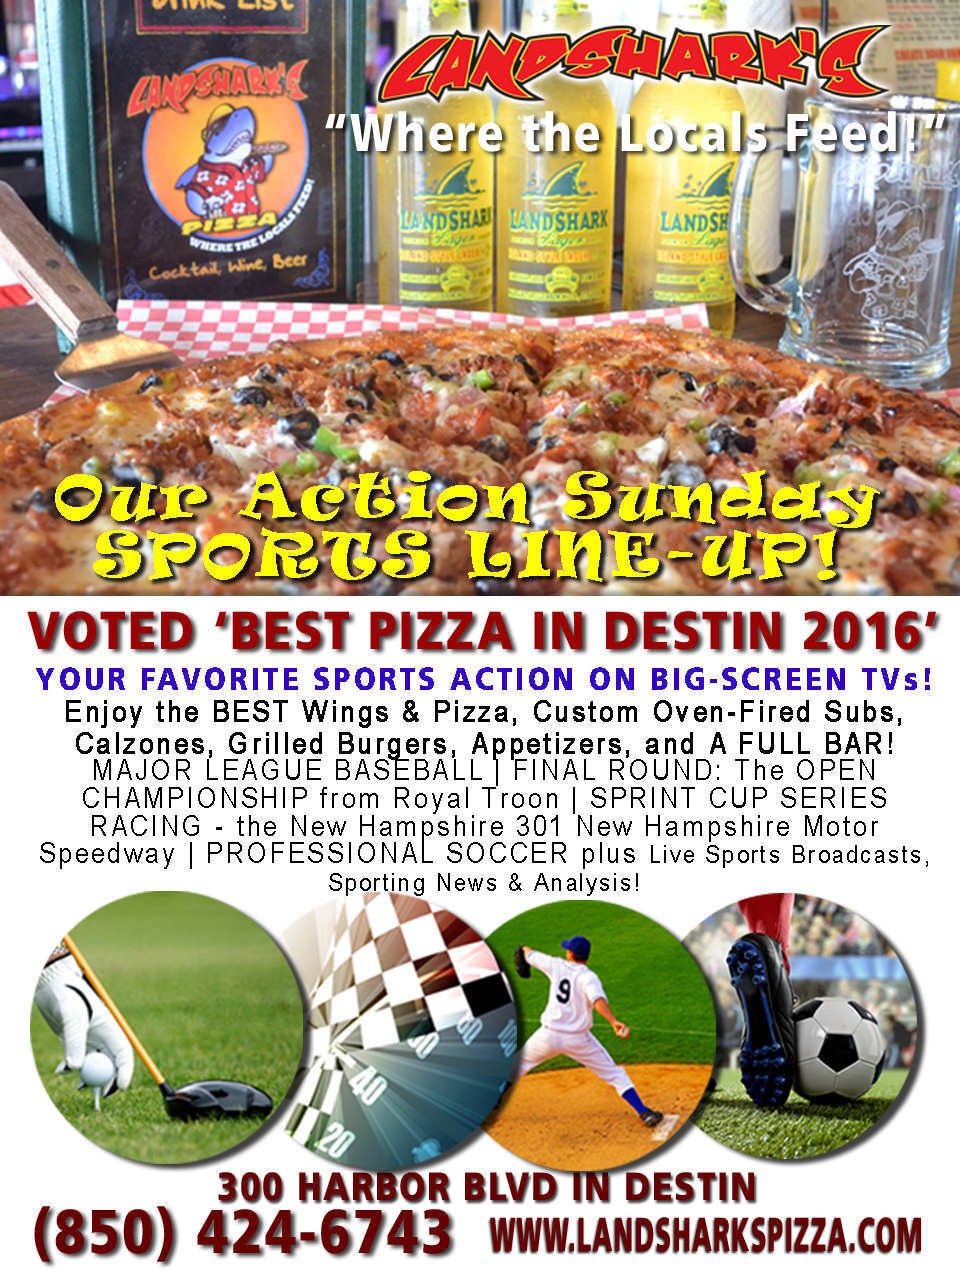 Destin FL Sports TV Landsharks Pizza Co